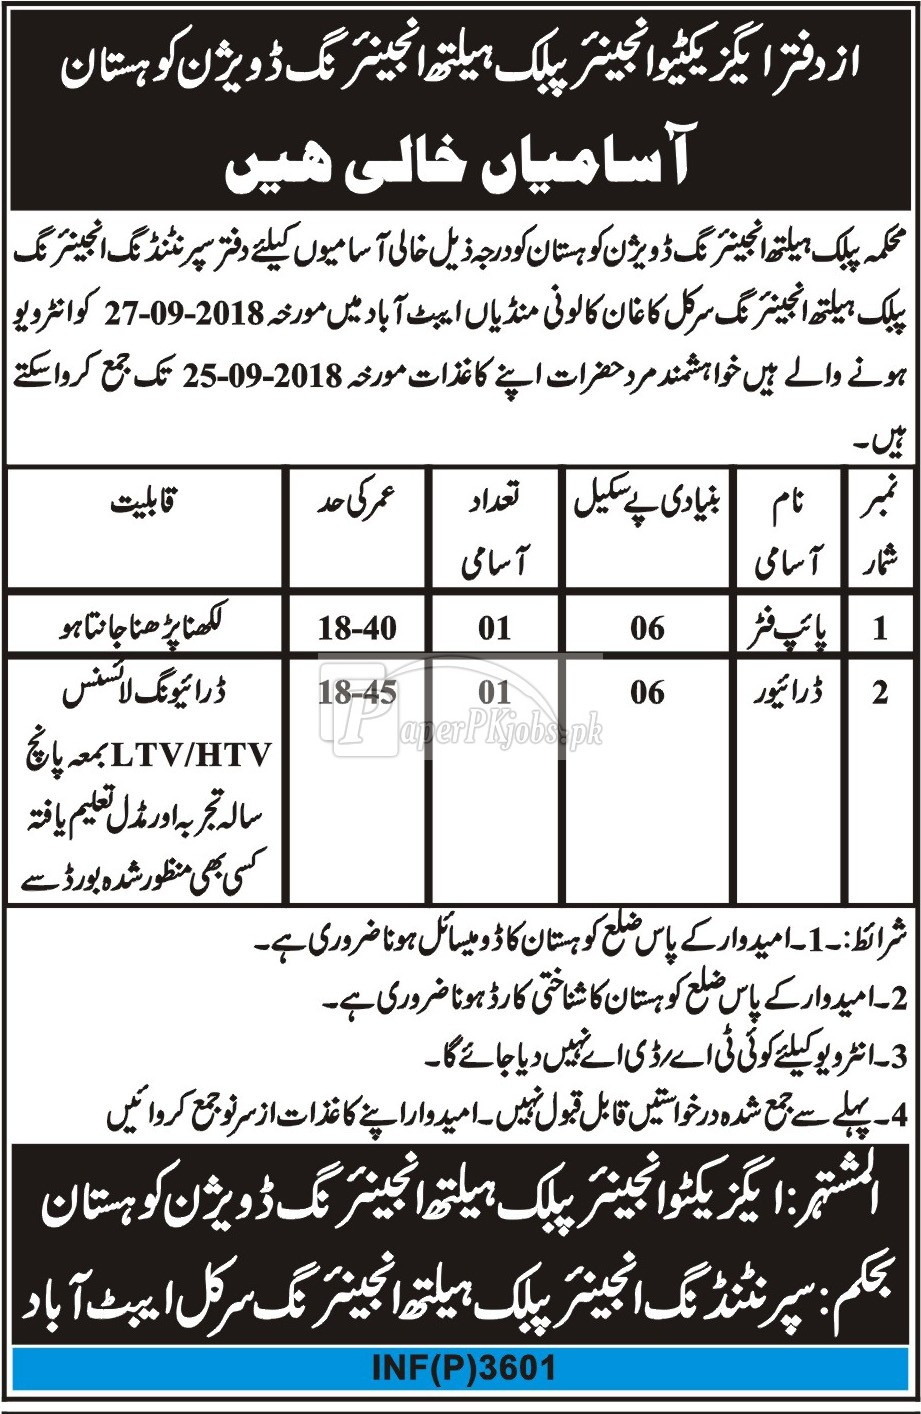 Public Health Engineering Division Kohistan Jobs 2018